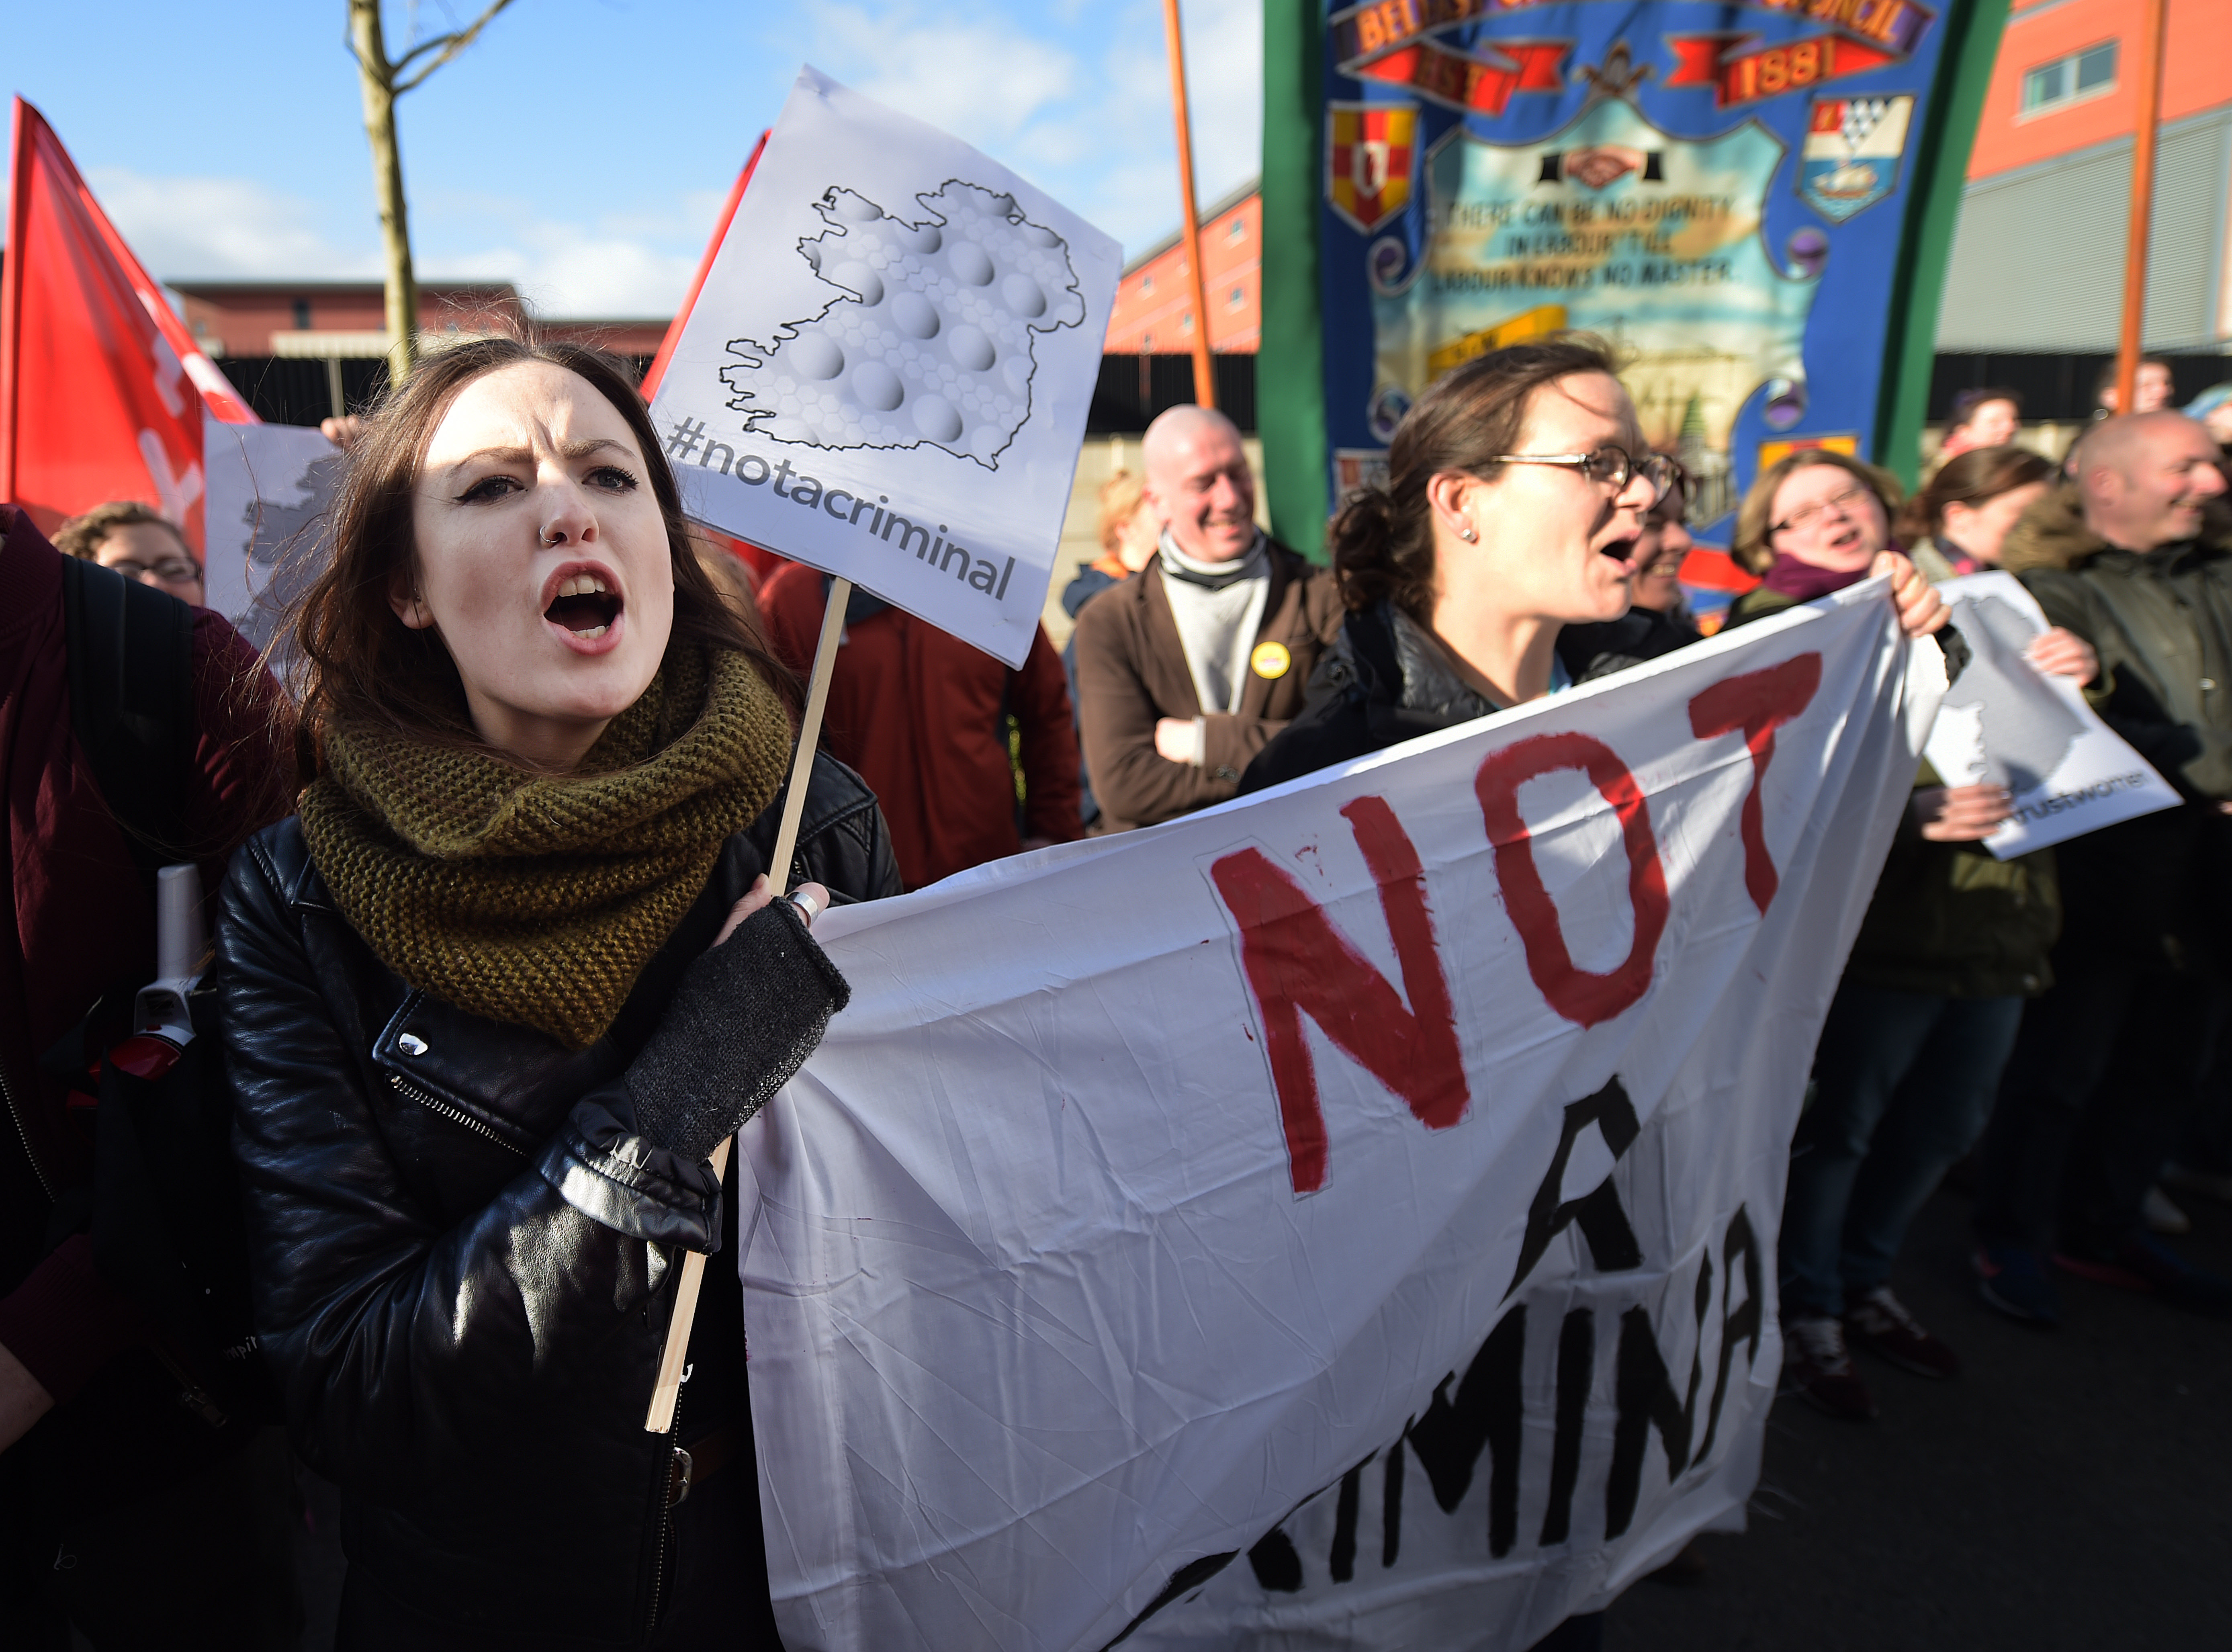 Pro choice supporters protest outside the Public Prosecution Office on April 7, 2016 in Belfast, Northern Ireland.